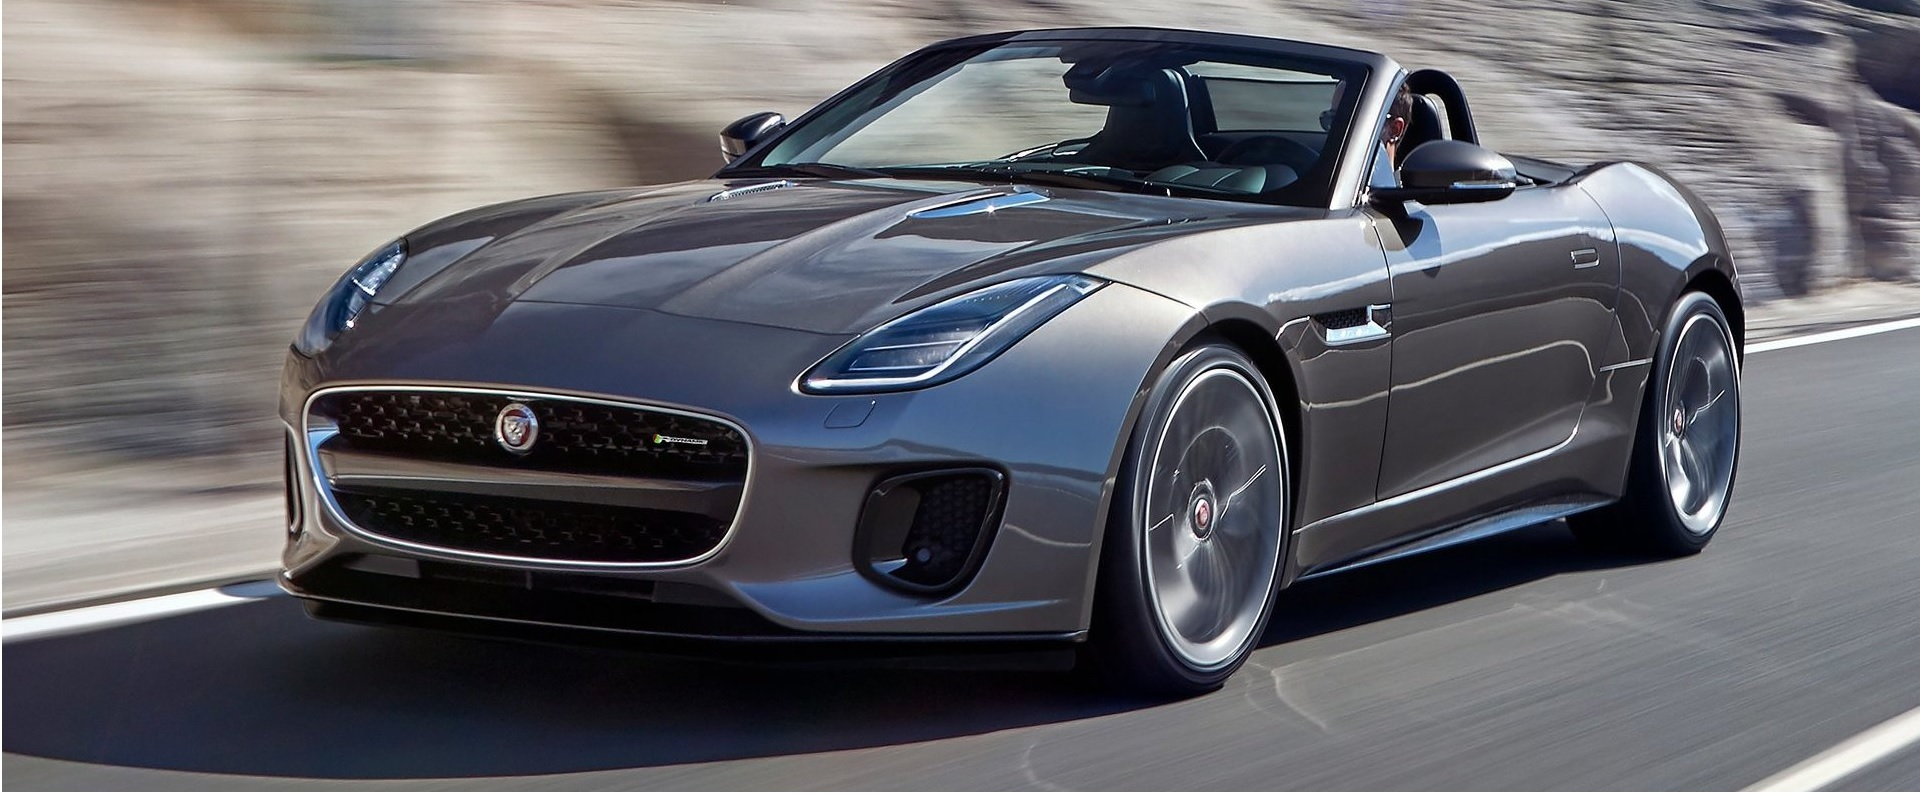 jaguar f type un 4 cylindres de 300 ch speed magazine. Black Bedroom Furniture Sets. Home Design Ideas